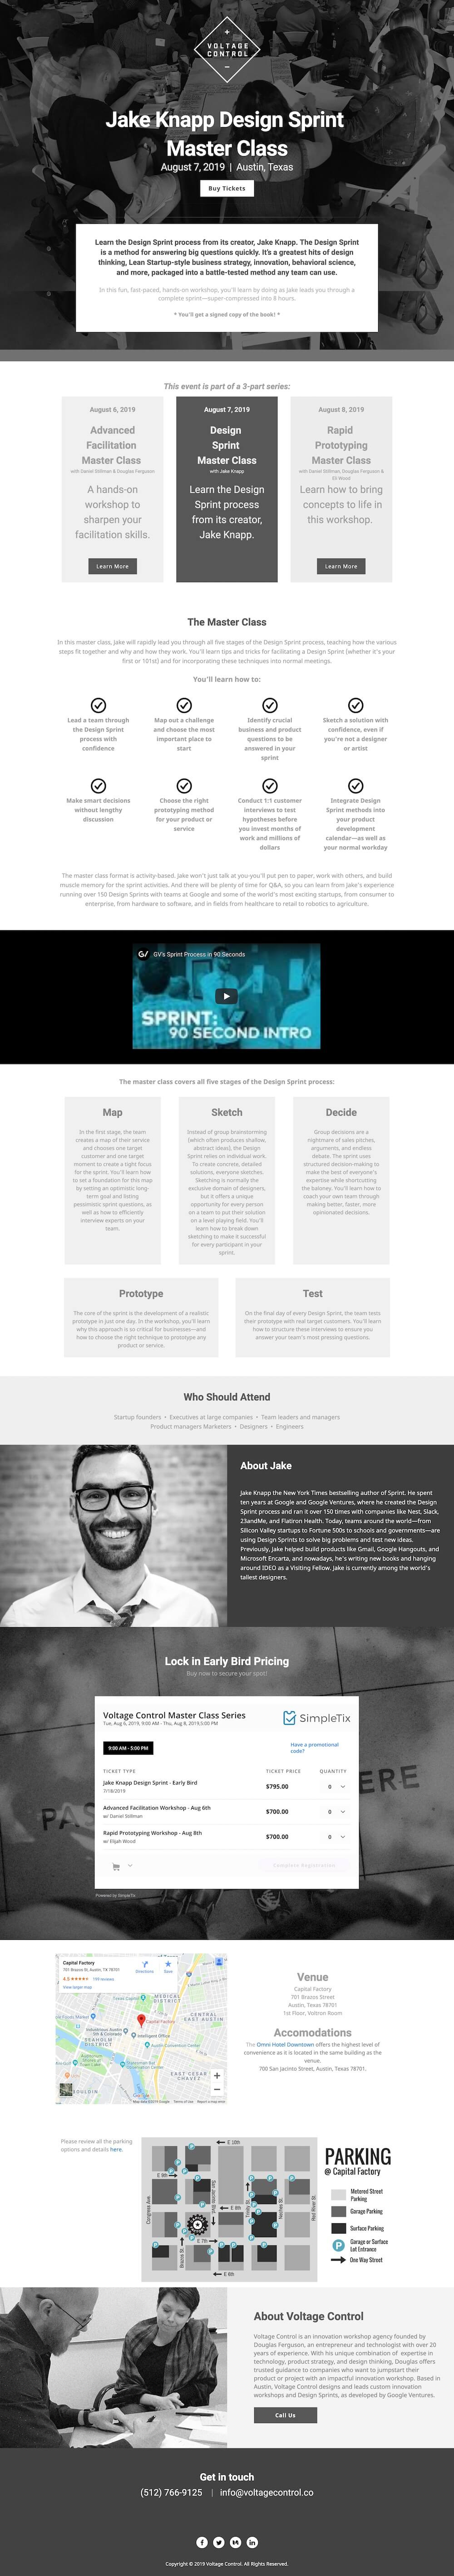 Jake Knapp (Master Class) Website Design